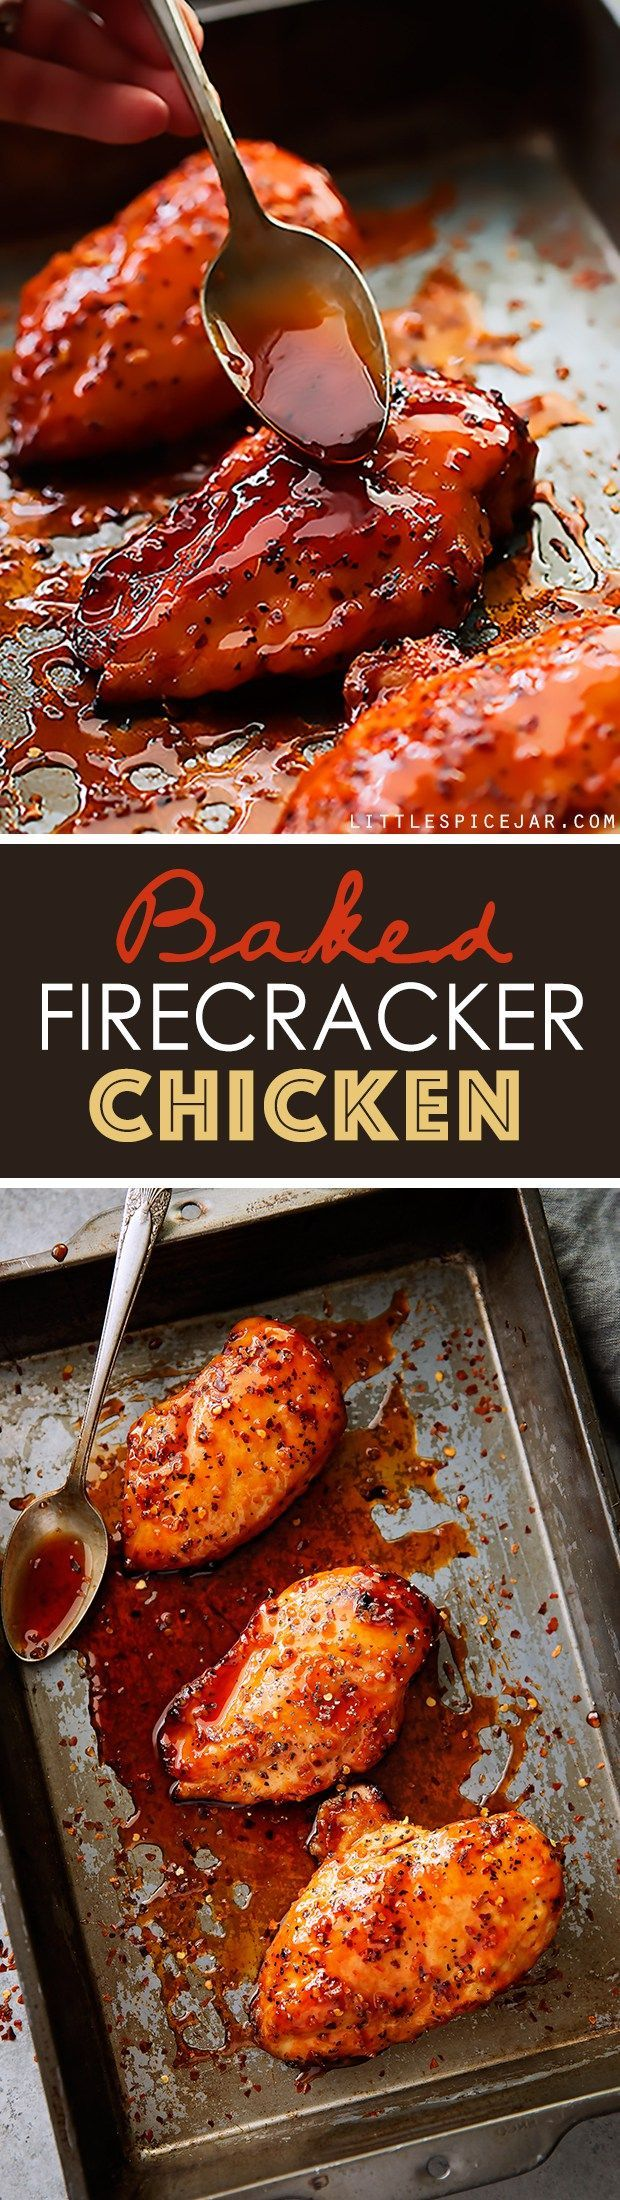 Easy to make chicken recipes for dinner